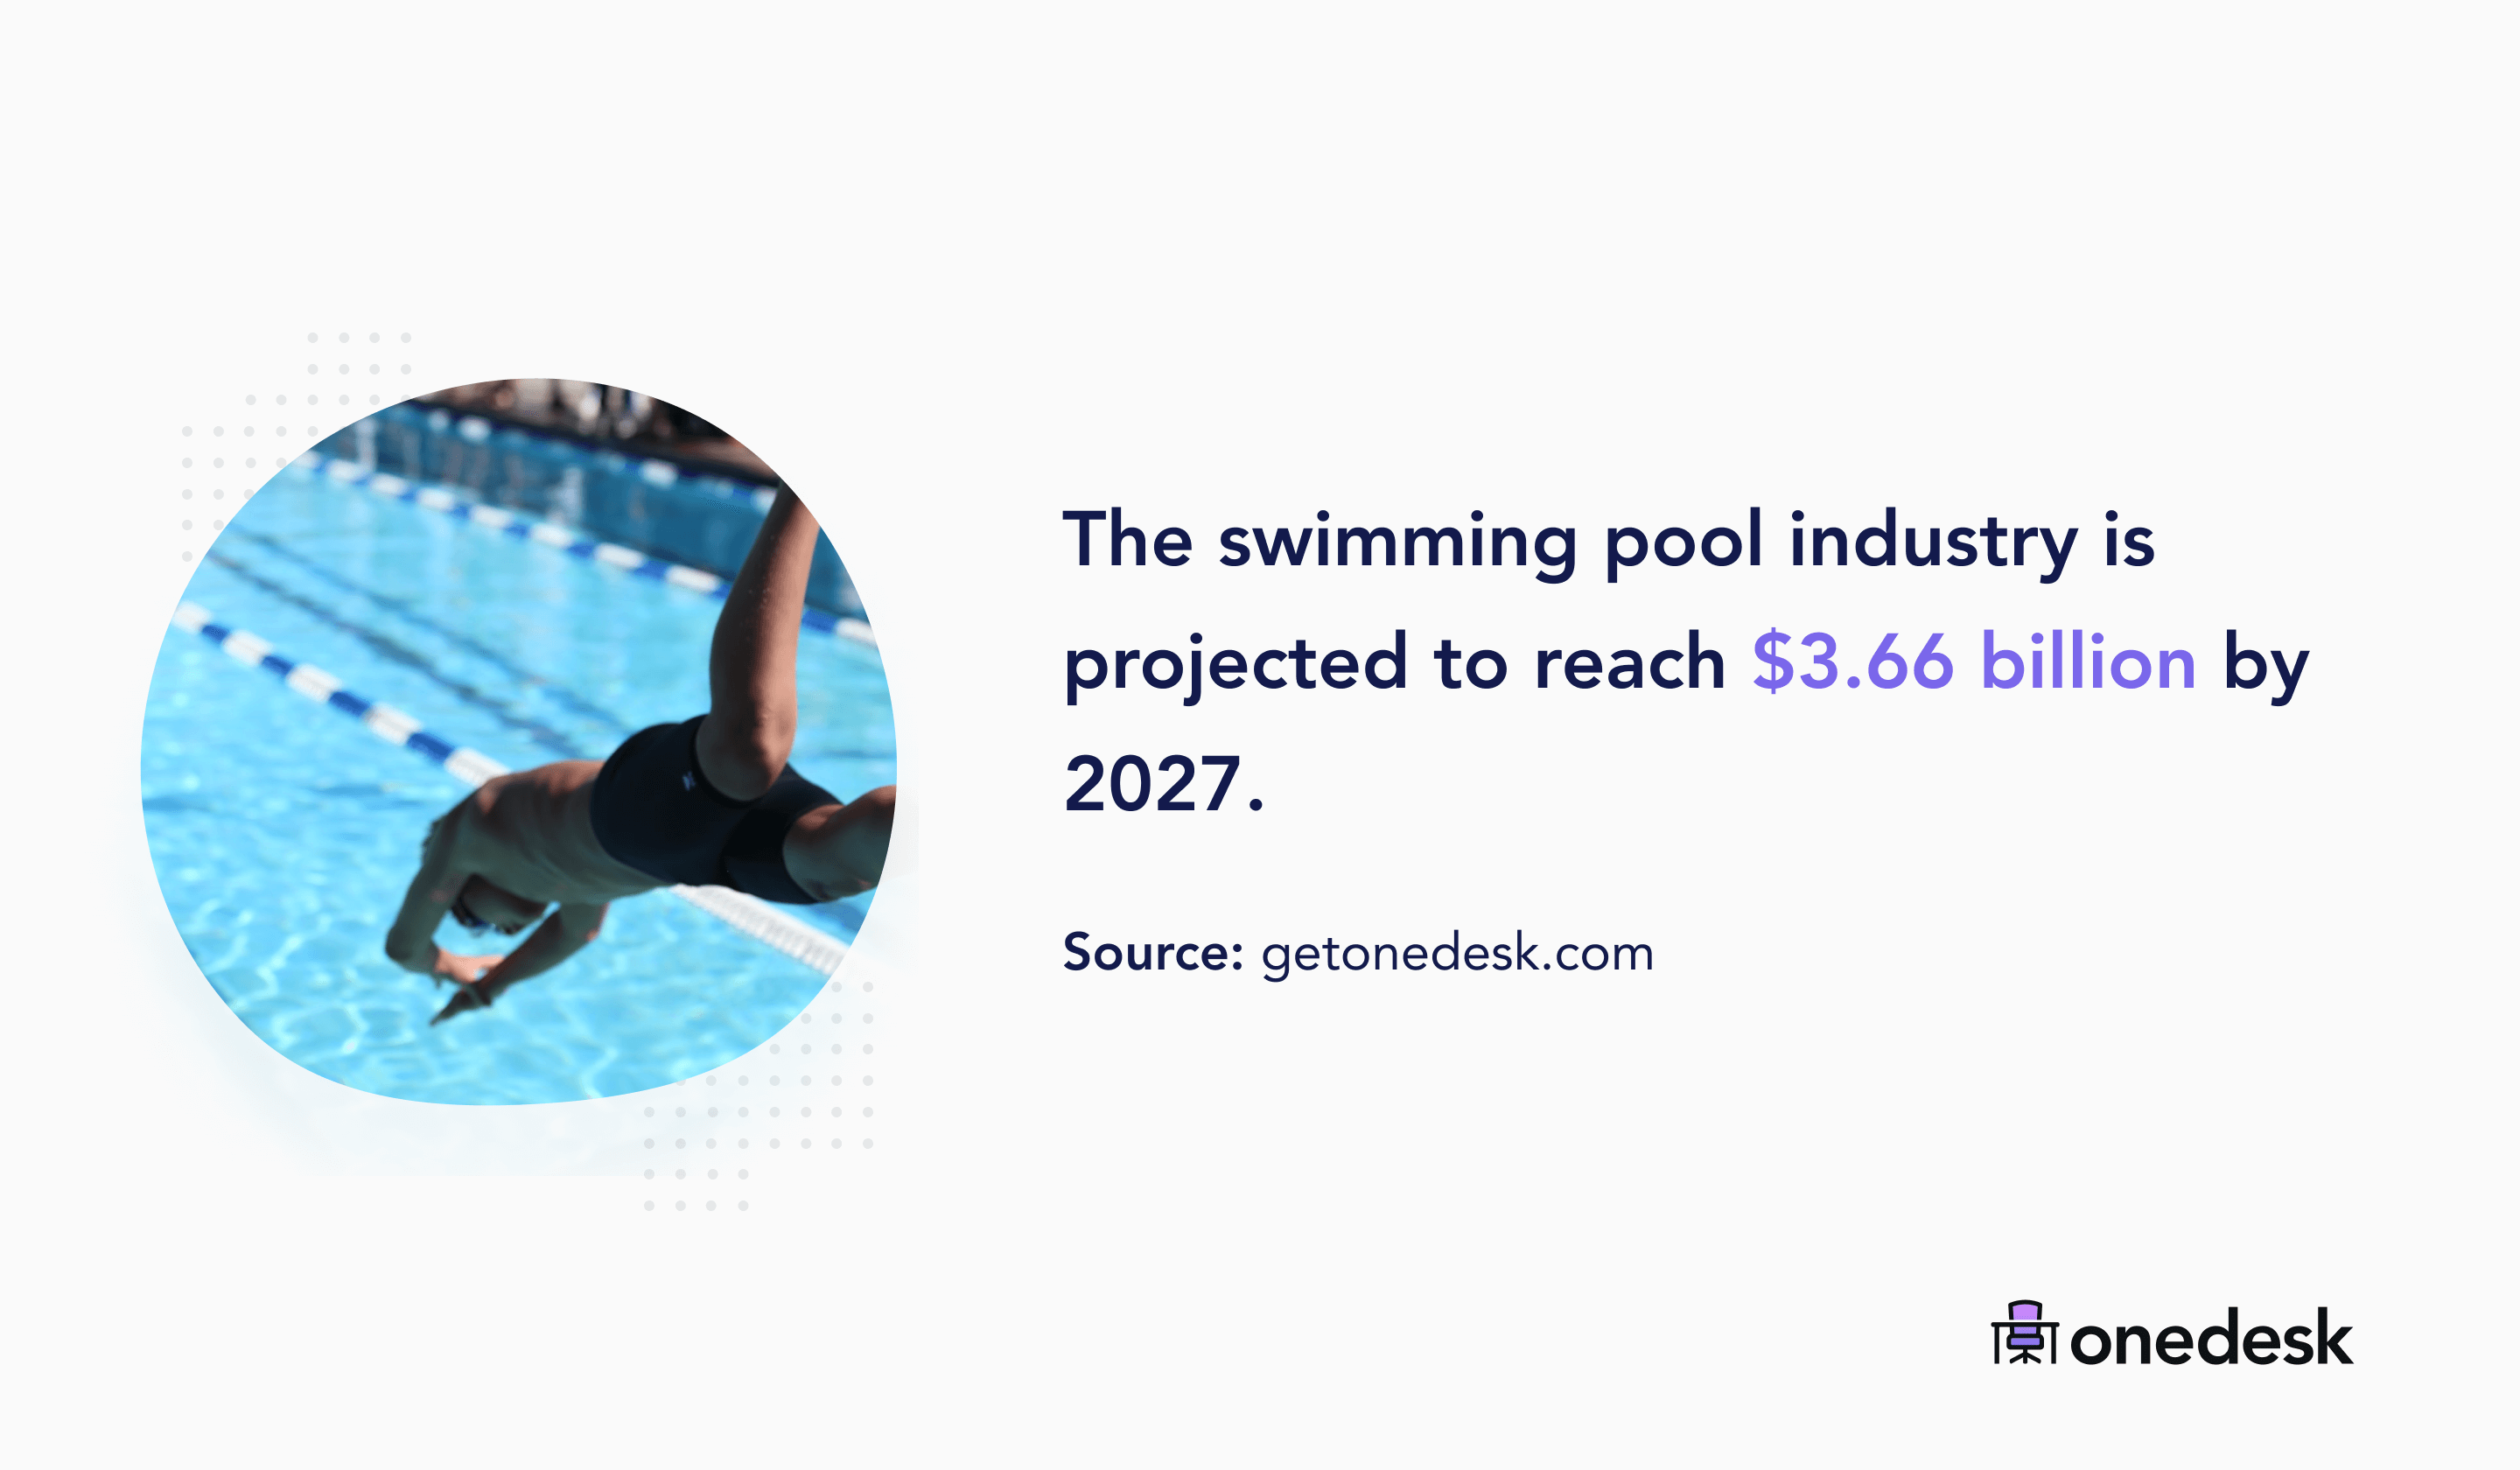 swimming pool industry growth